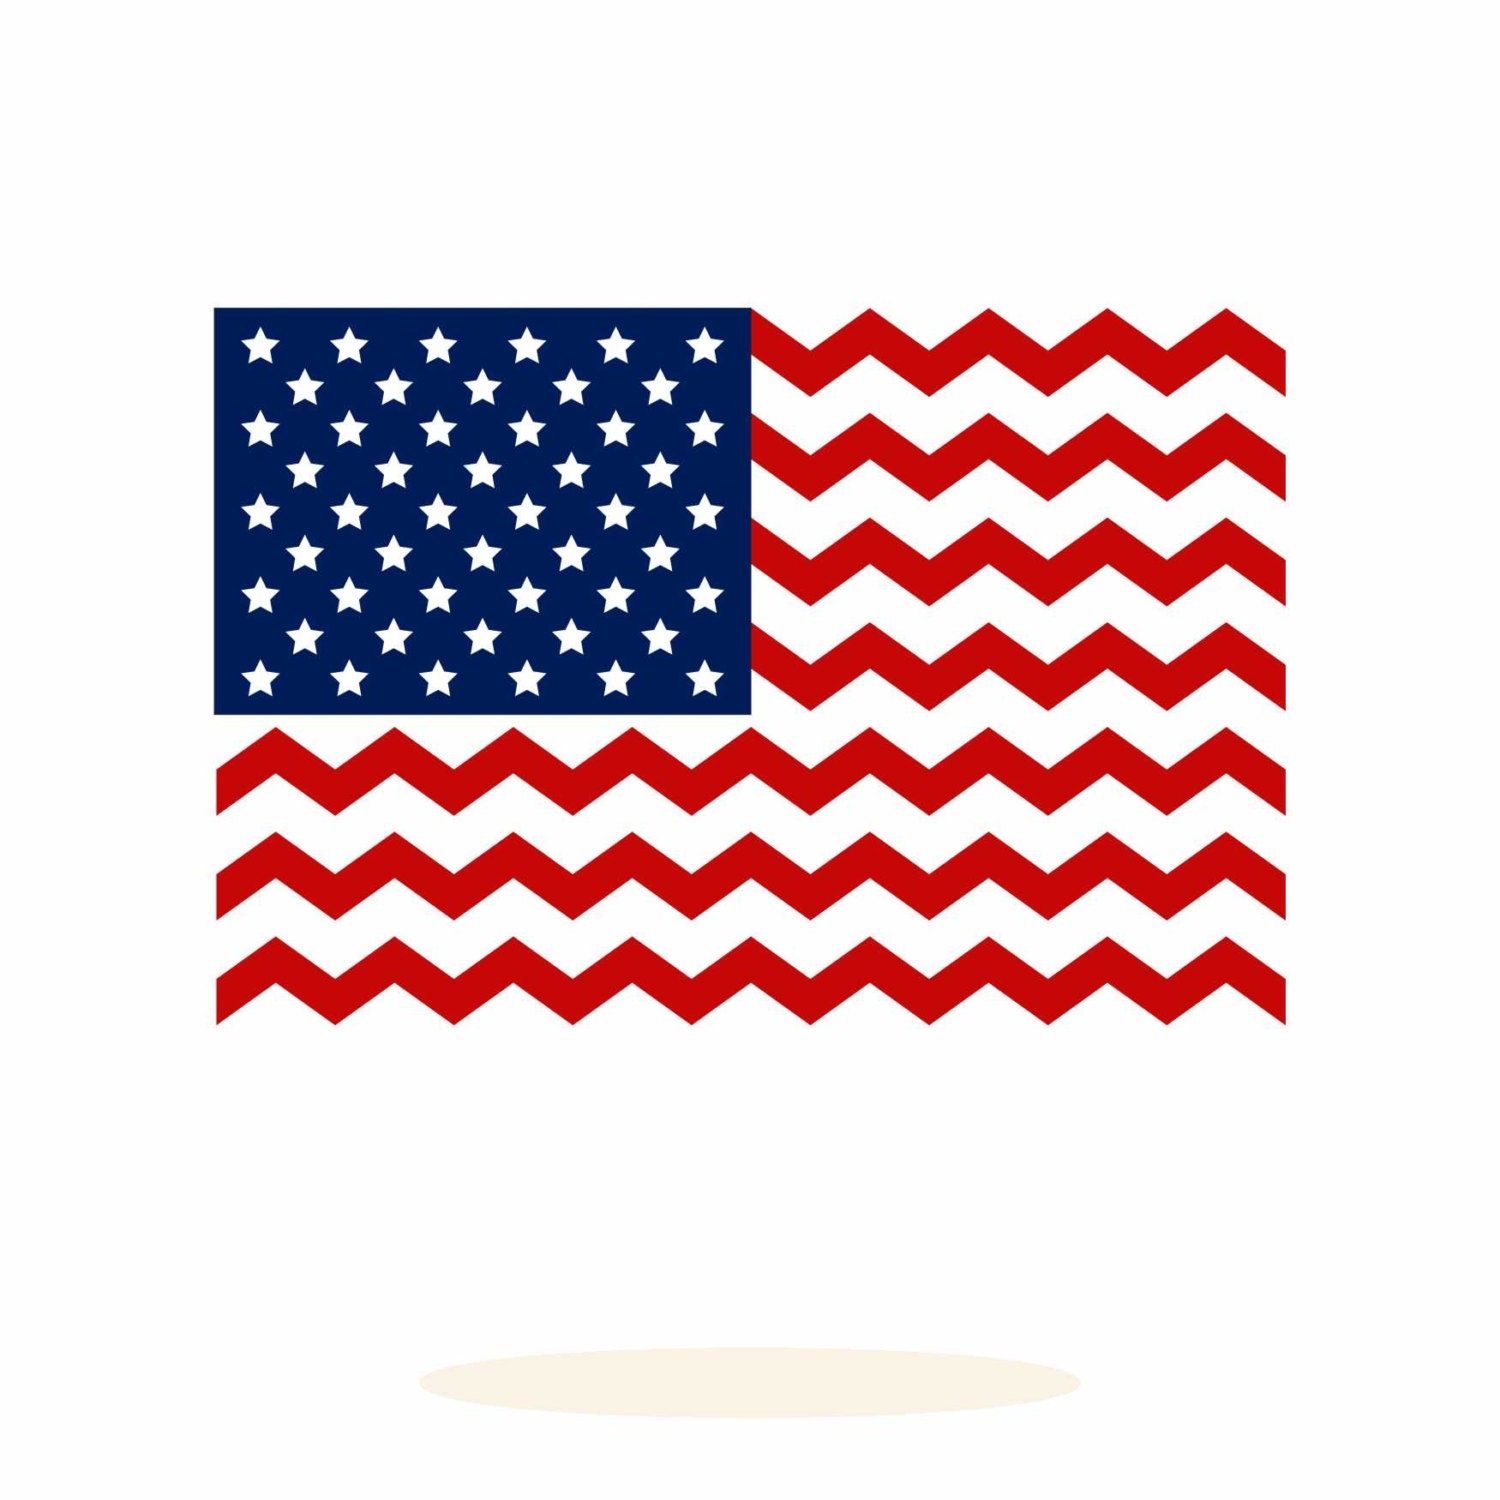 United States Flag Chevron Pattern Svg Dxf Vector Art By